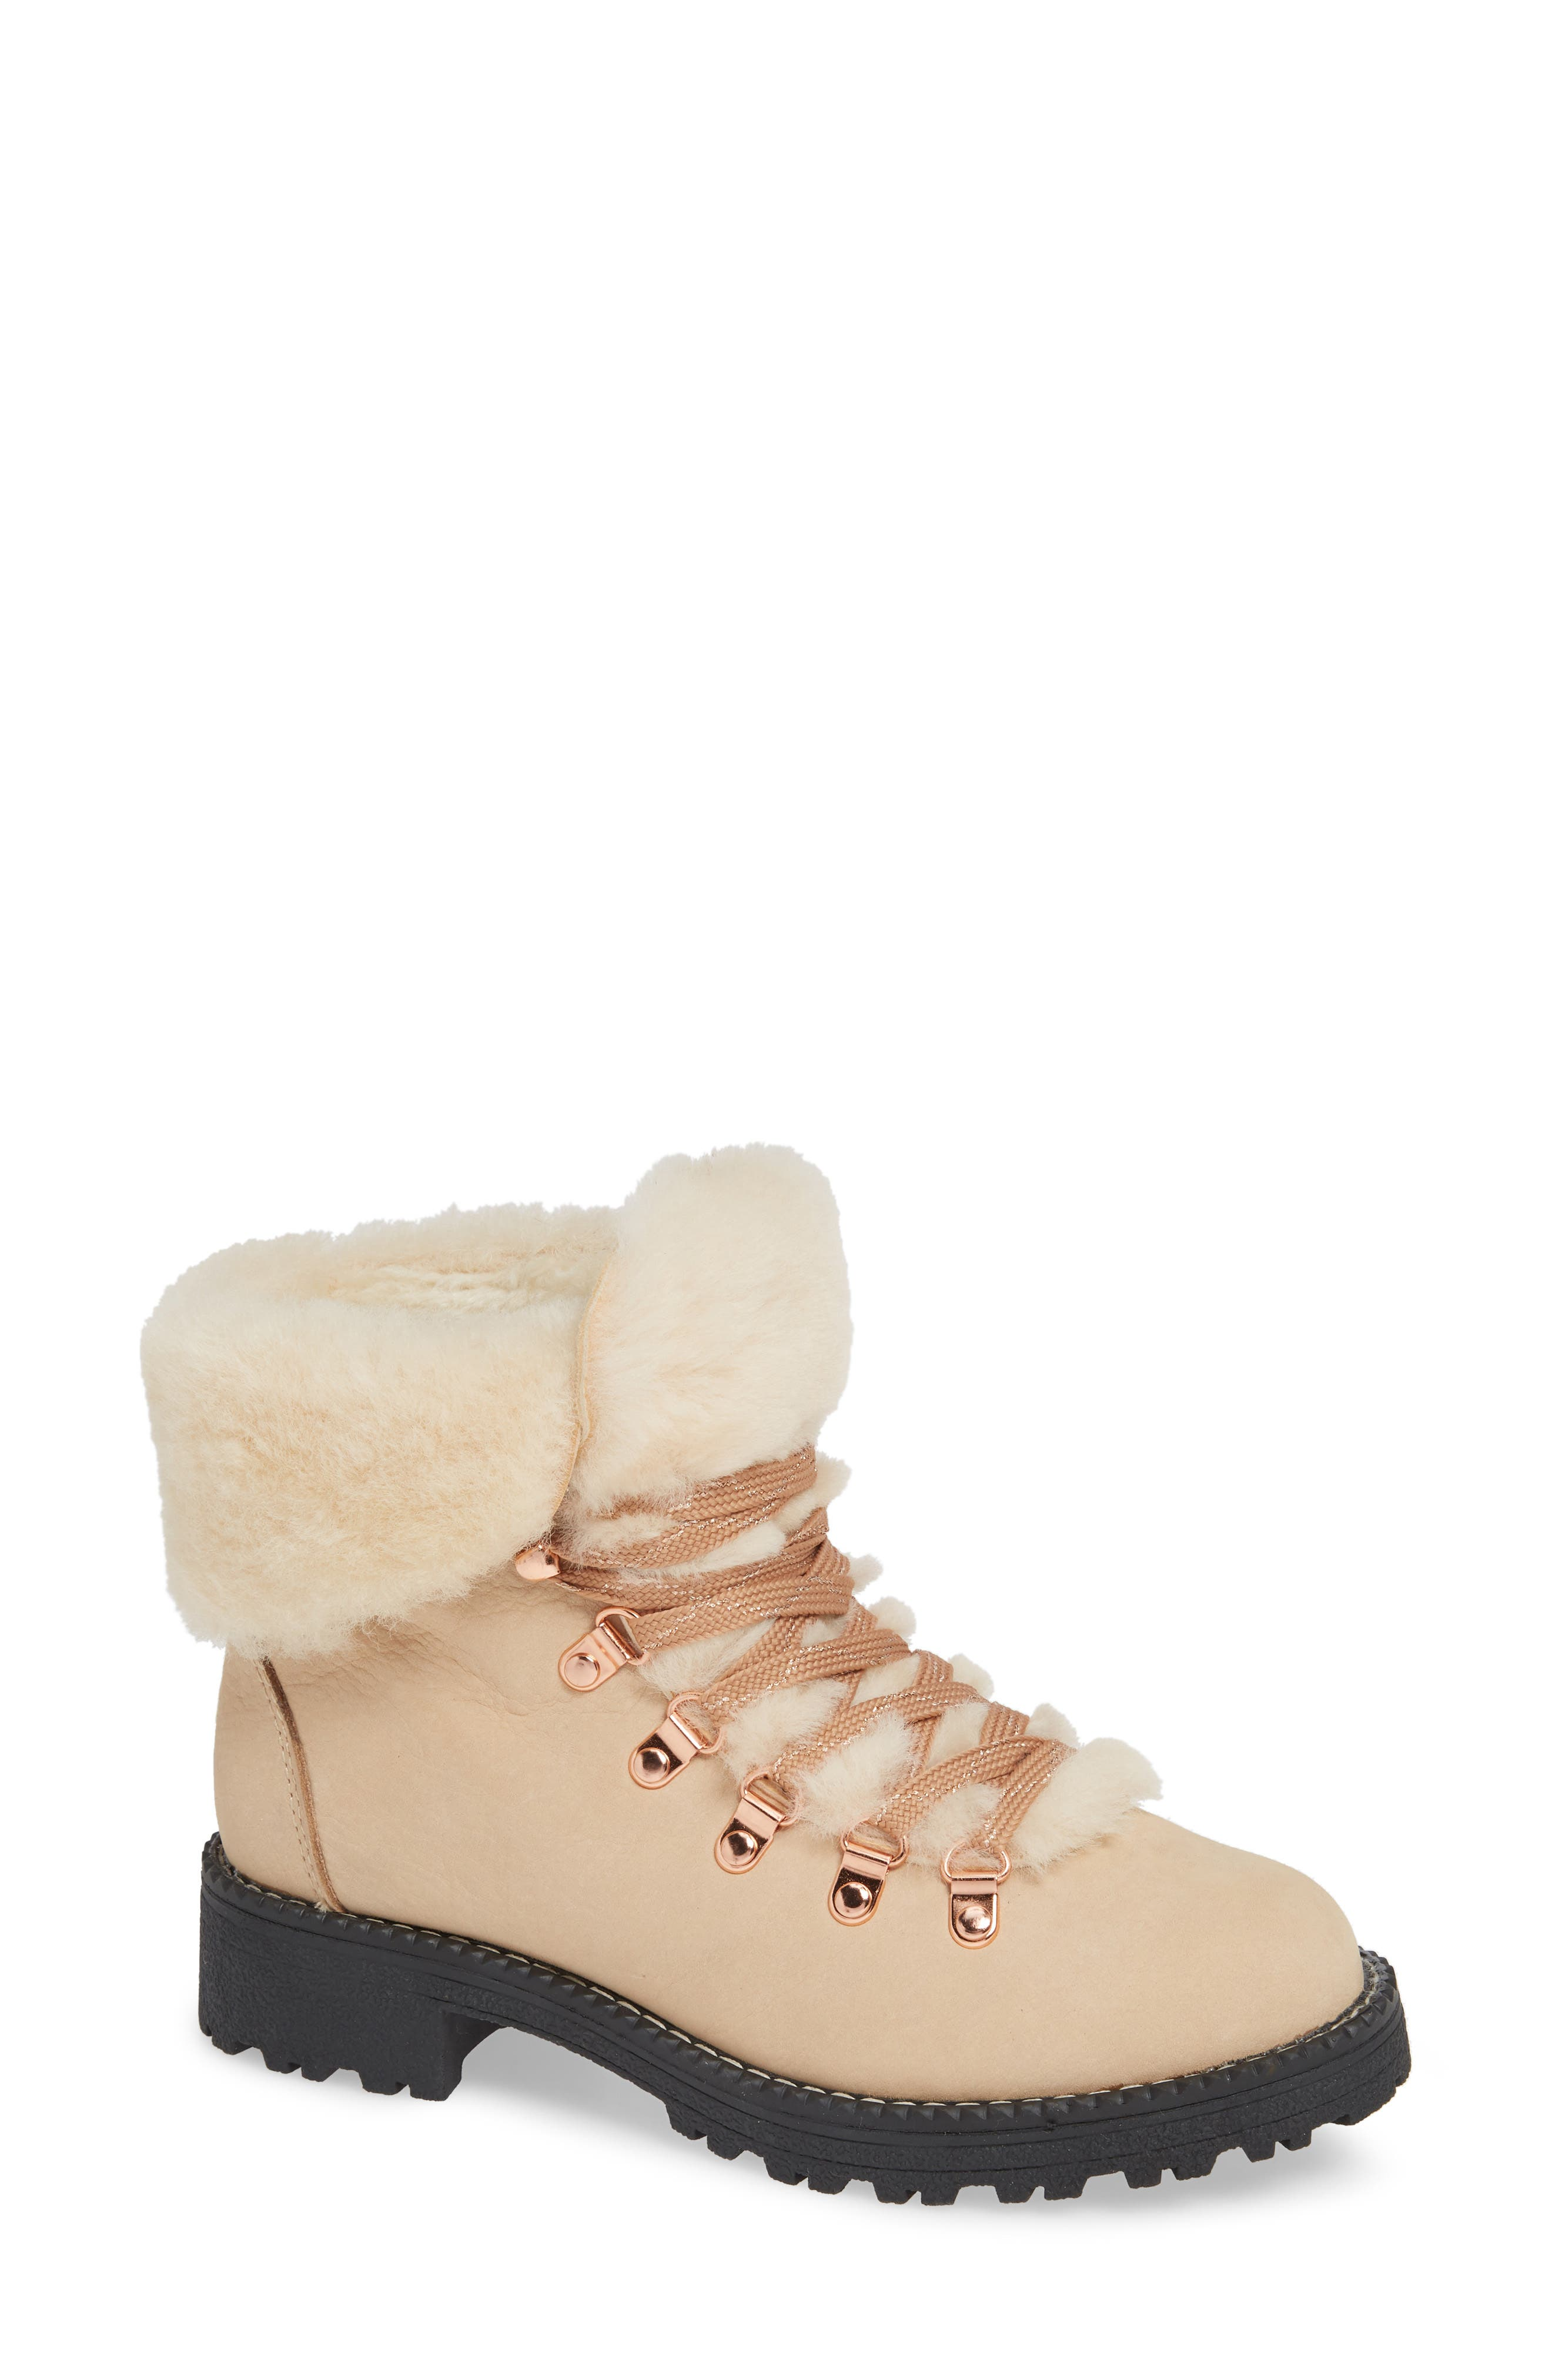 Nordic Genuine Shearling Cuff Winter Boot,                             Main thumbnail 1, color,                             DUNE LEATHER